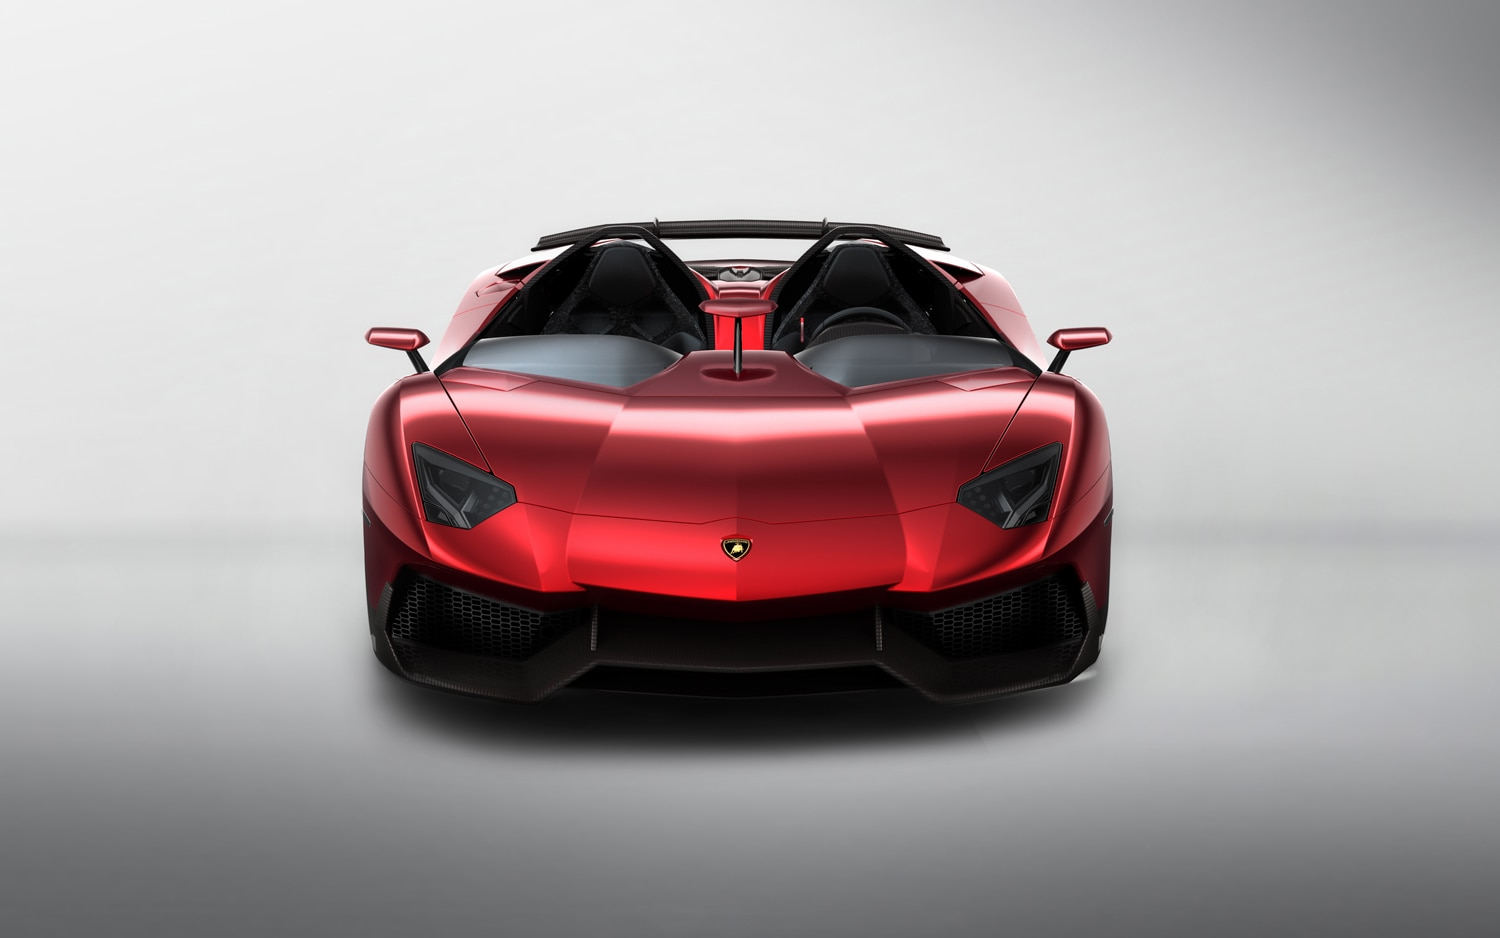 Lamborghini Aventador J - First Look - Automobile Magazine